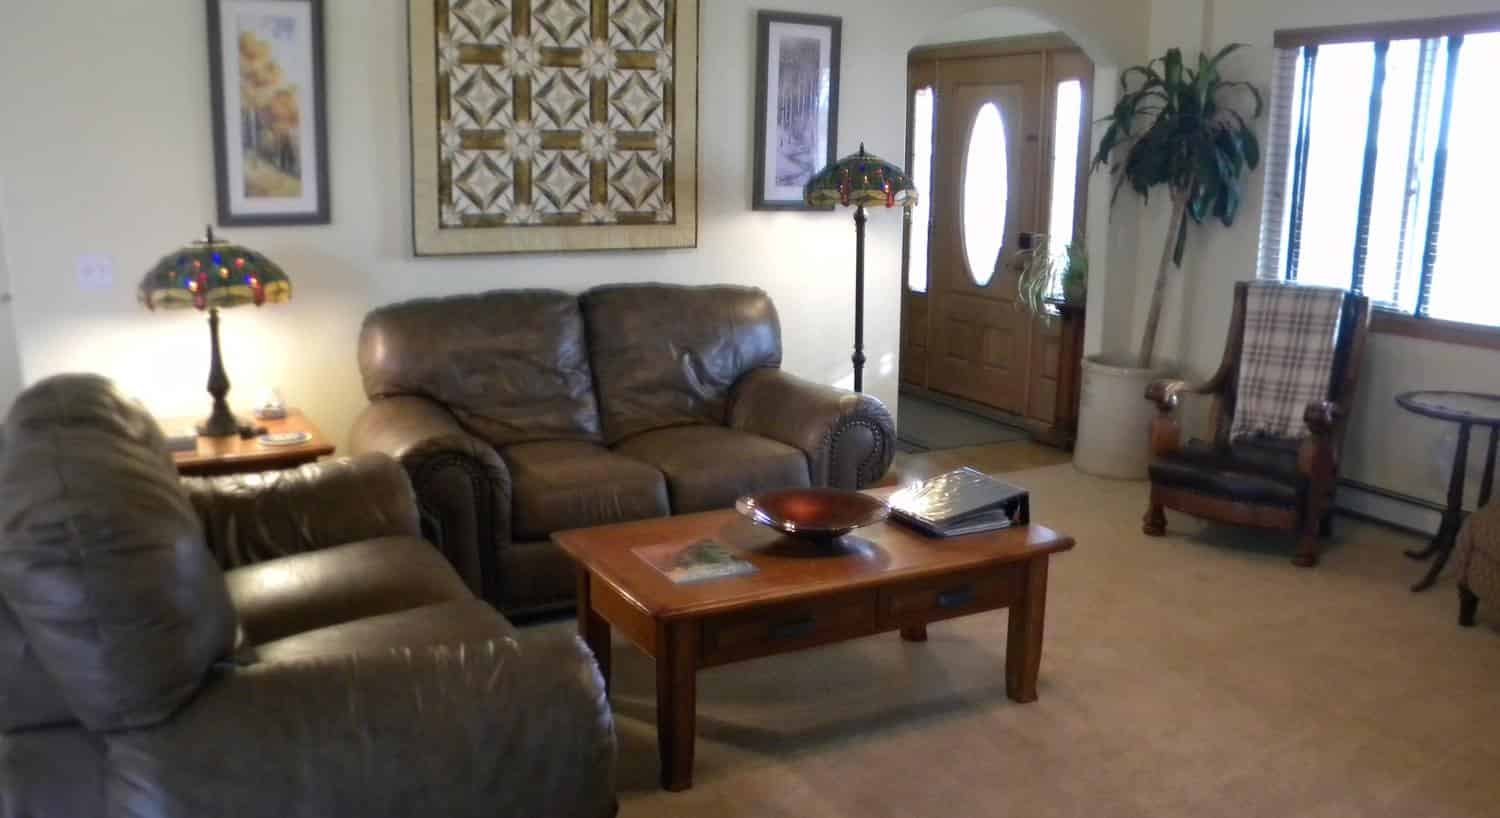 Livingroom with large brown leather loveseats and wooden coffee table